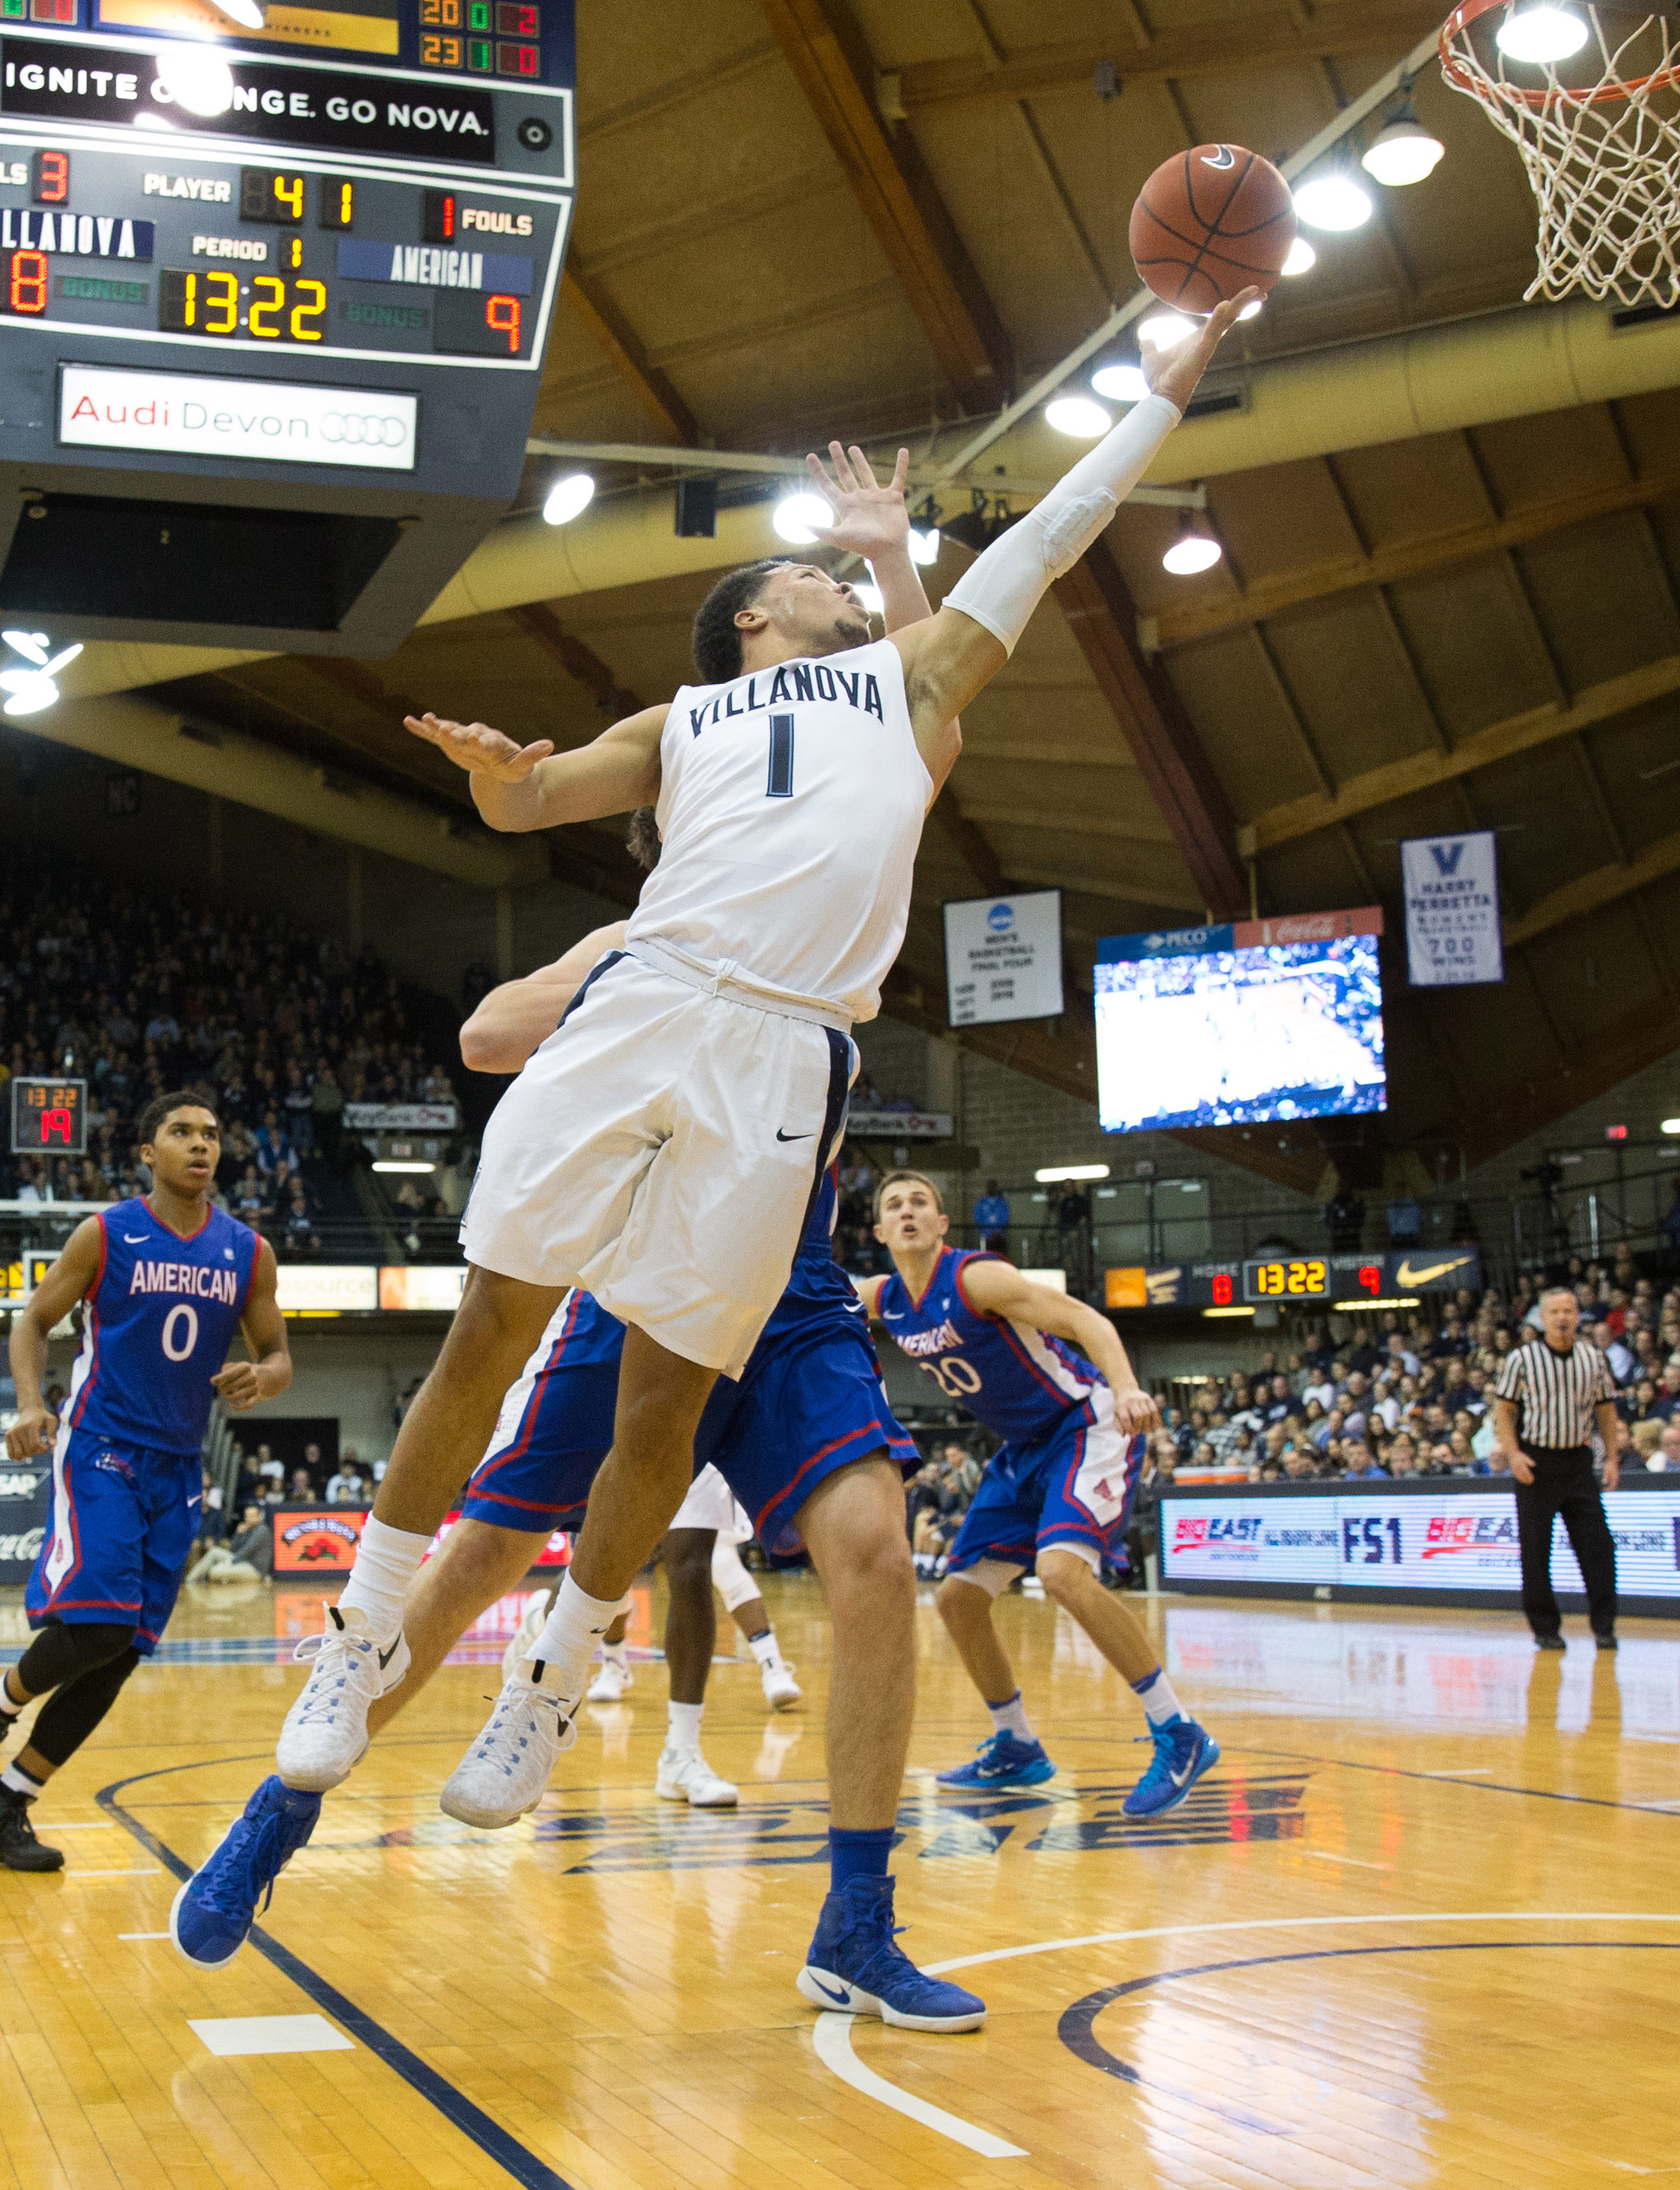 """villanova guys Injuries helped injuries helped listen to one of the guys who got injured: """"honestly, i think it helped us,'' phil booth said monday night after villanova had."""